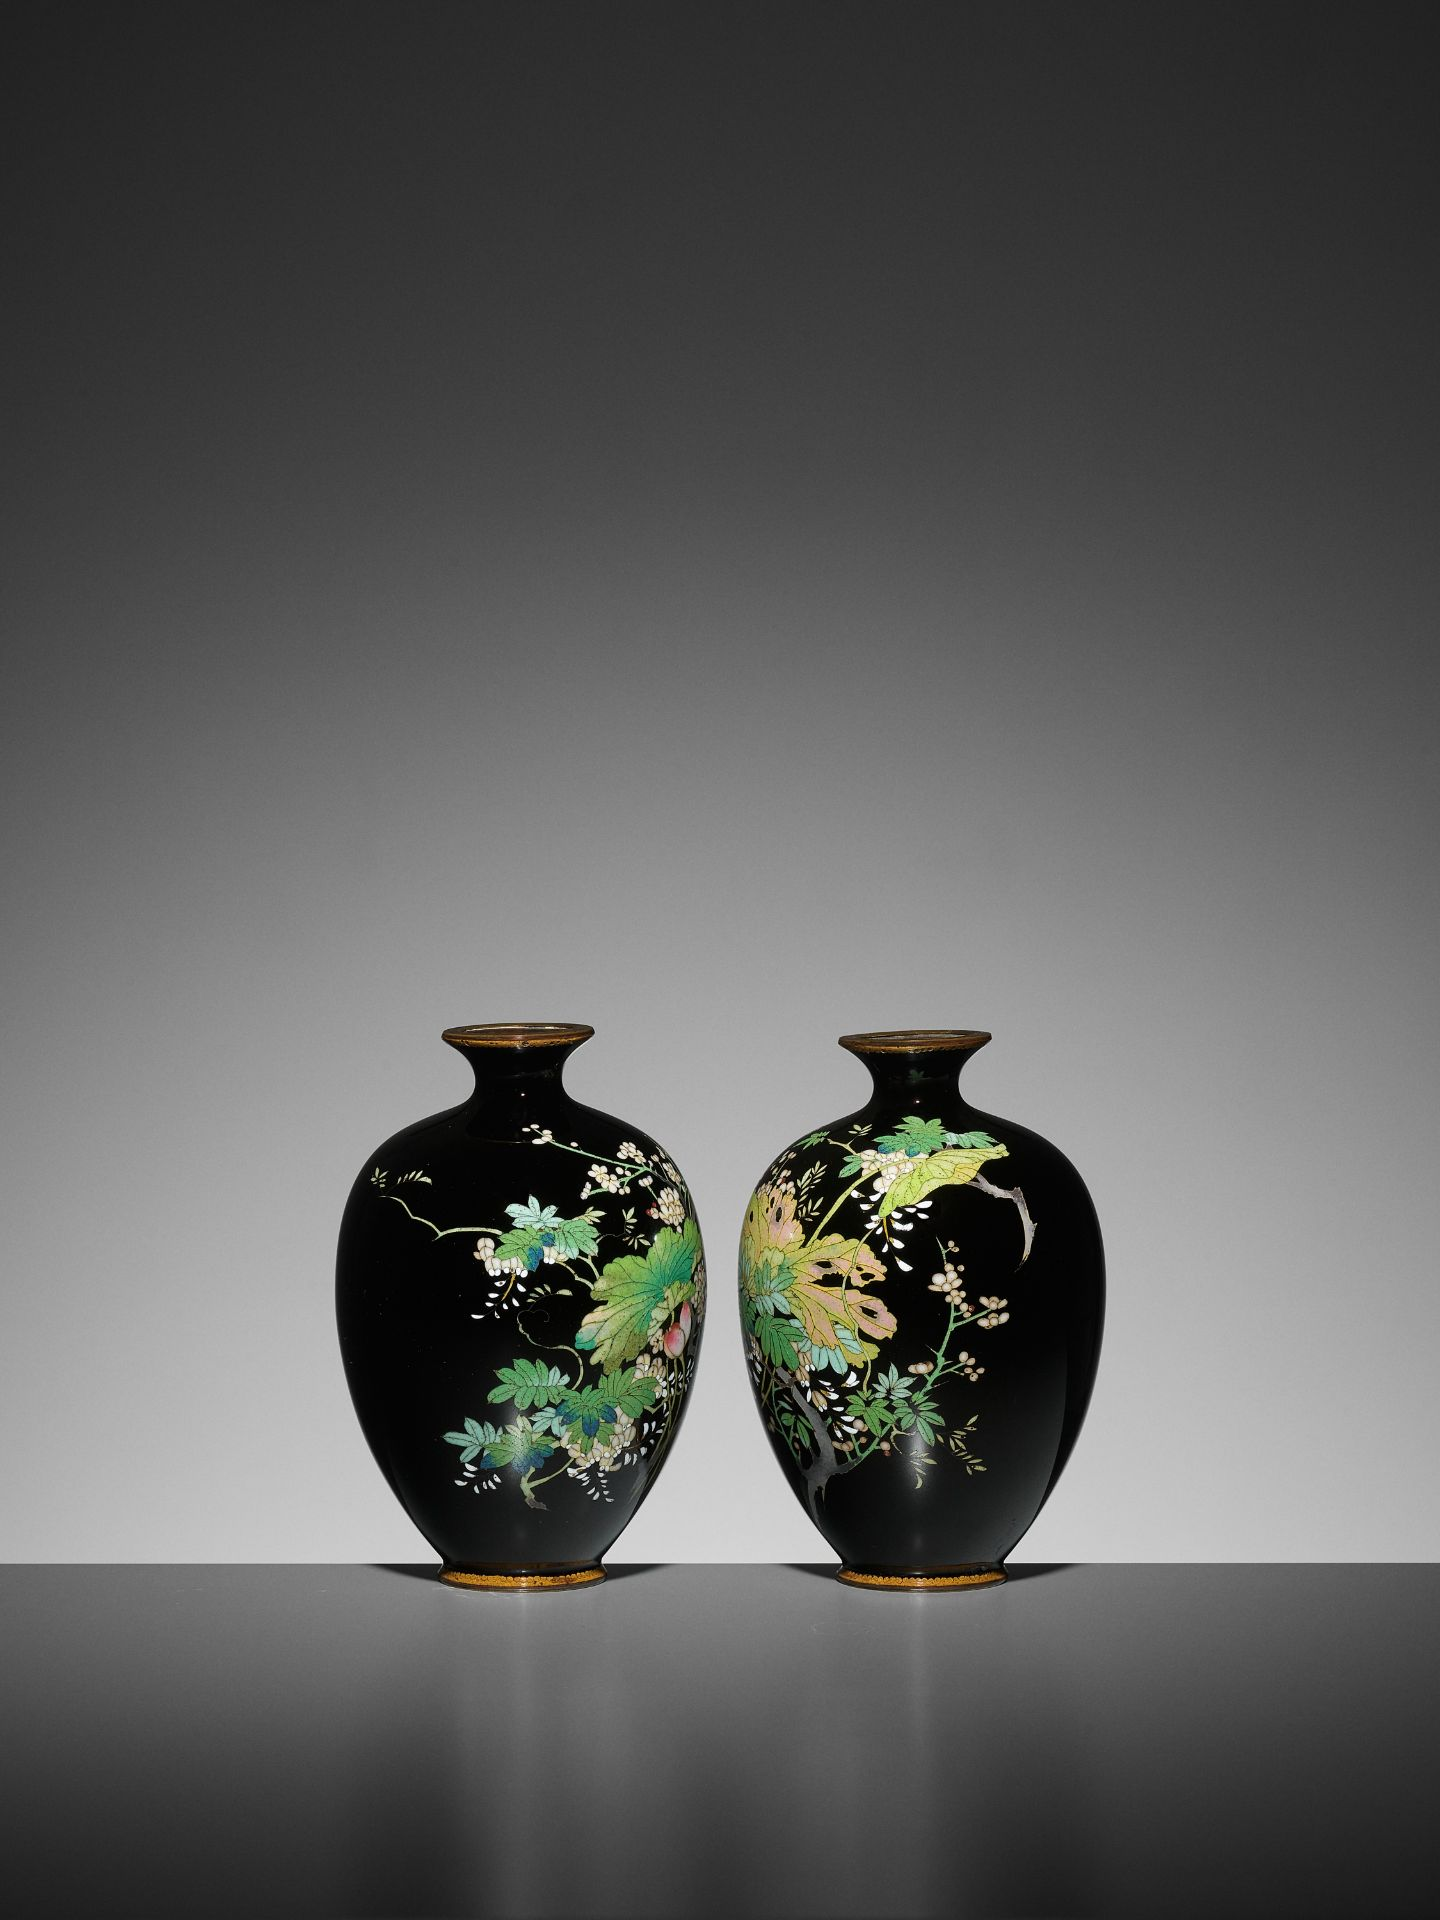 A PAIR OF SMALL CLOISONNE VASES - Image 2 of 7